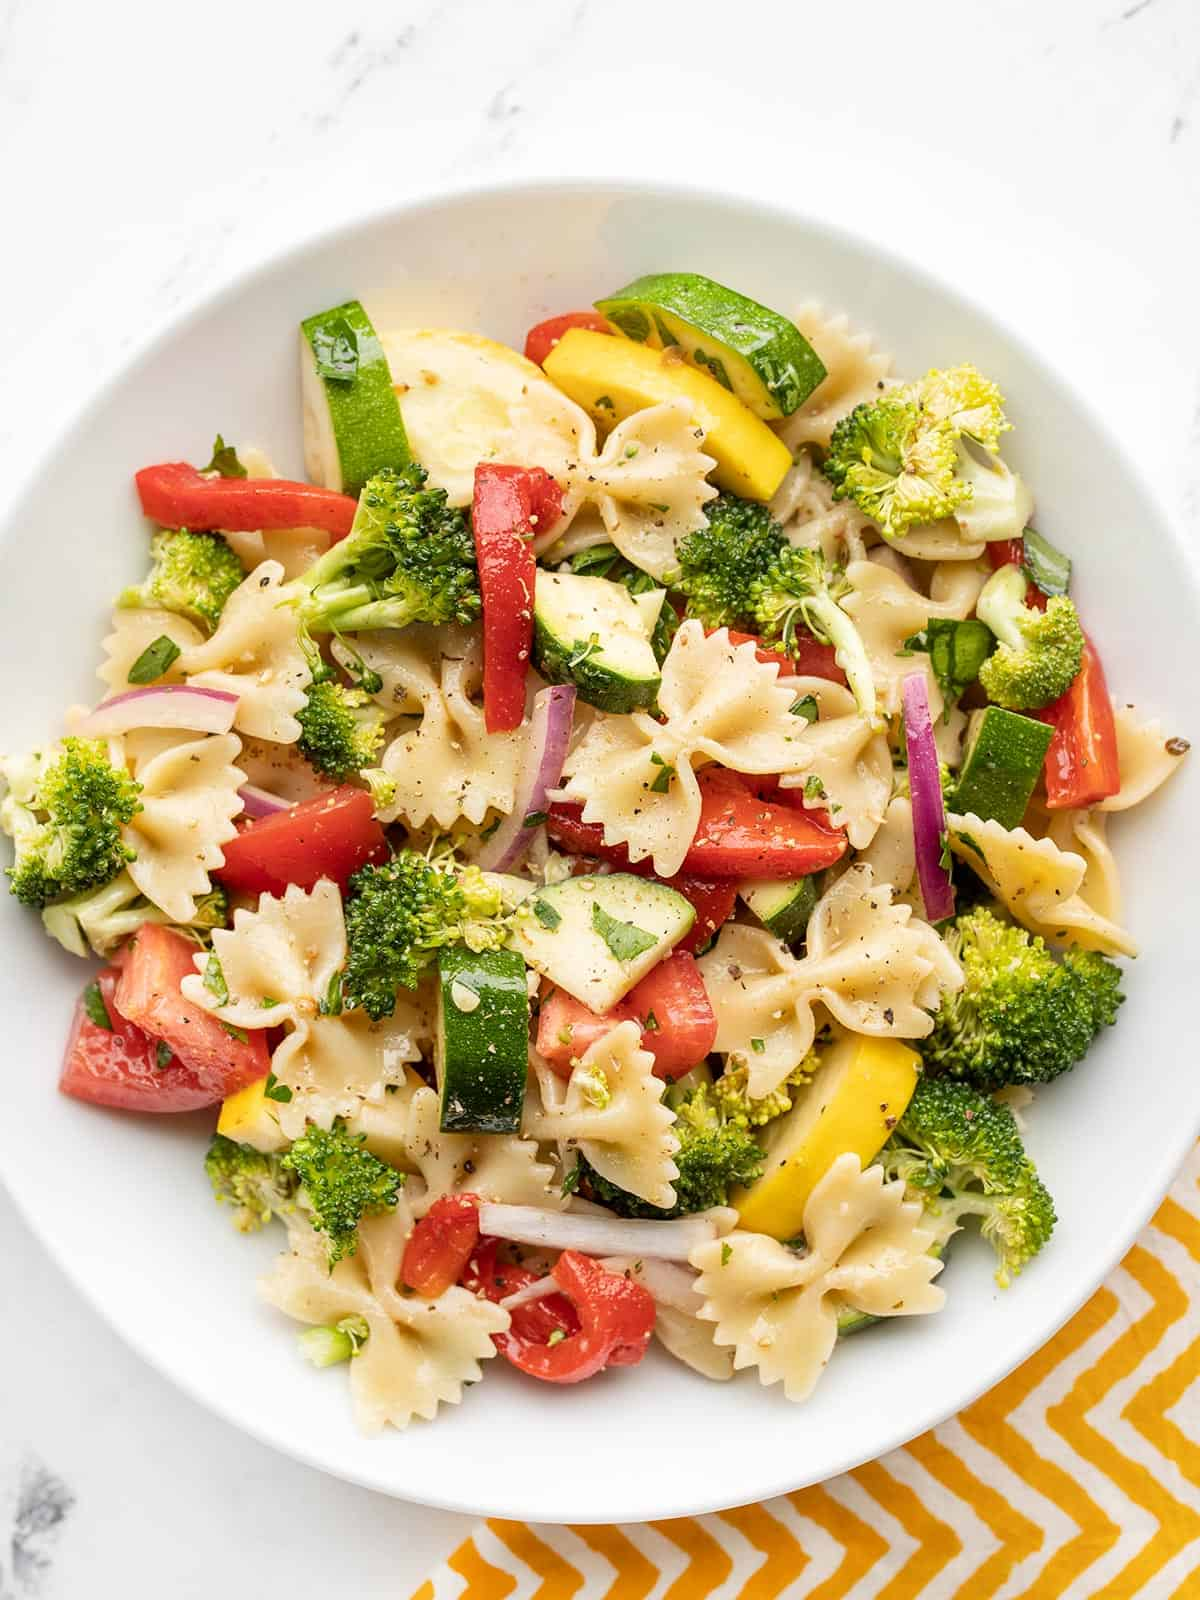 Overhead view of a bowl full of summer vegetable pasta salad